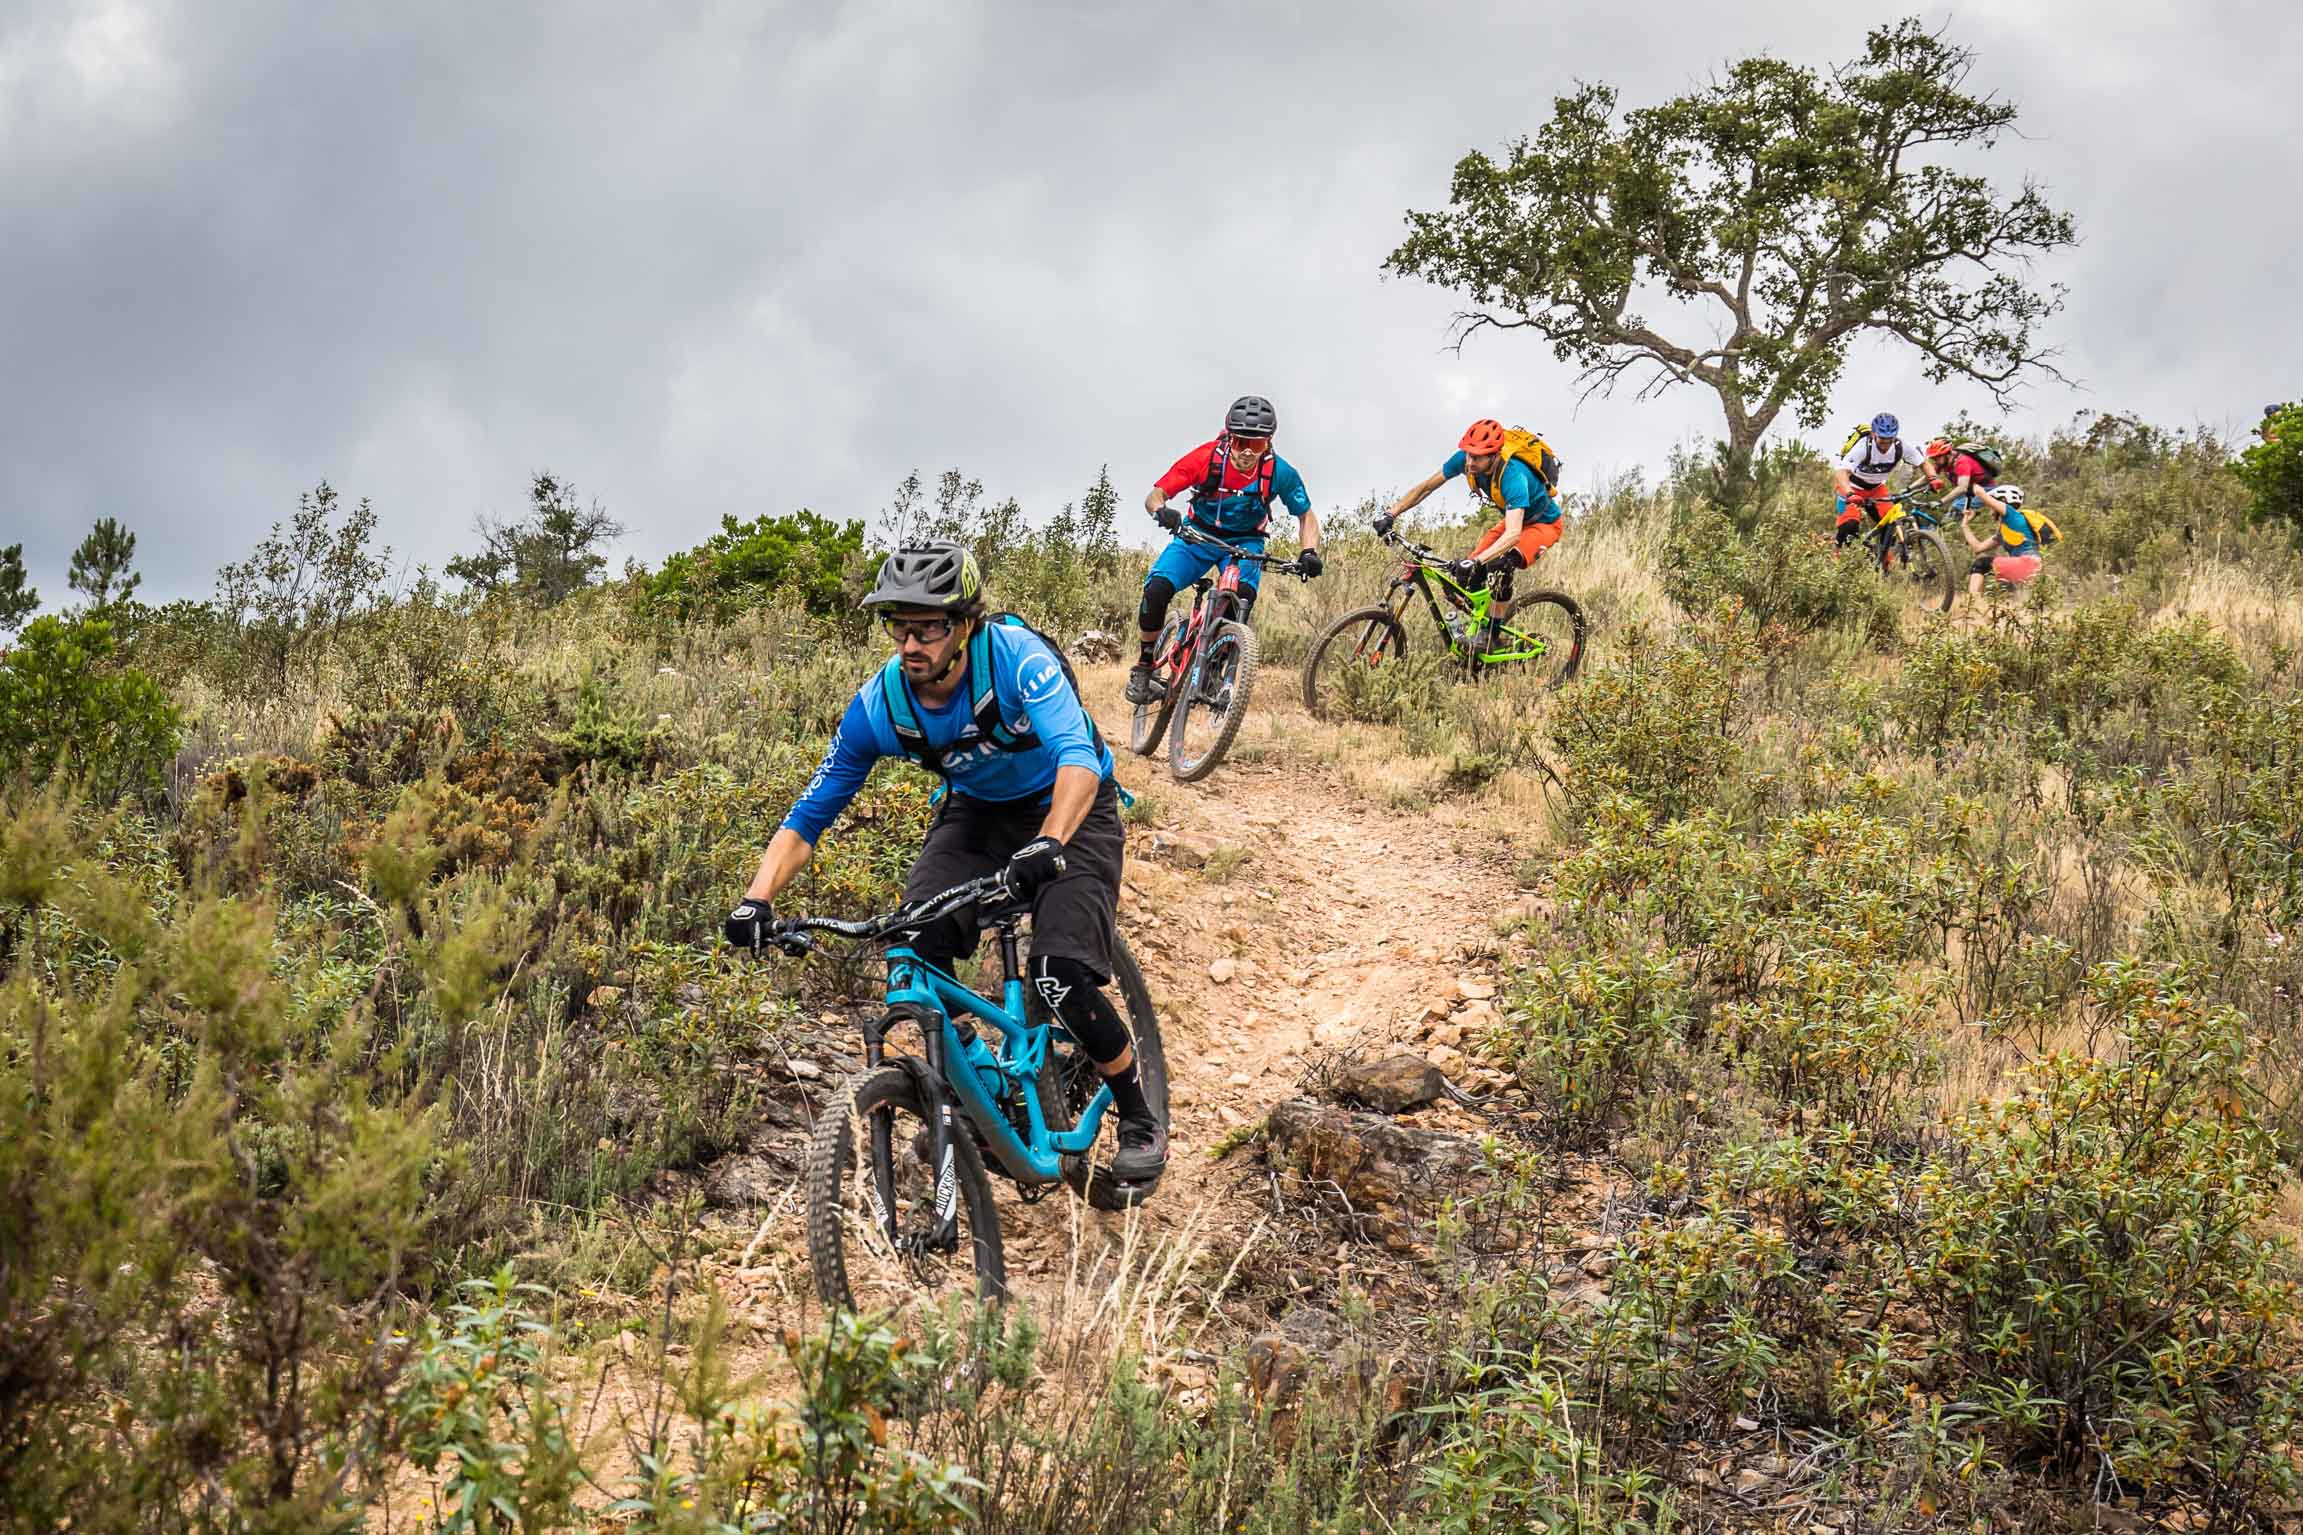 GROUP TOUR 40€ - Min. 6 riders (for organized groups only), up to 3h ride. Add 40€/50€ for a standard/electric full suspension enduro rental bike and protection gear.